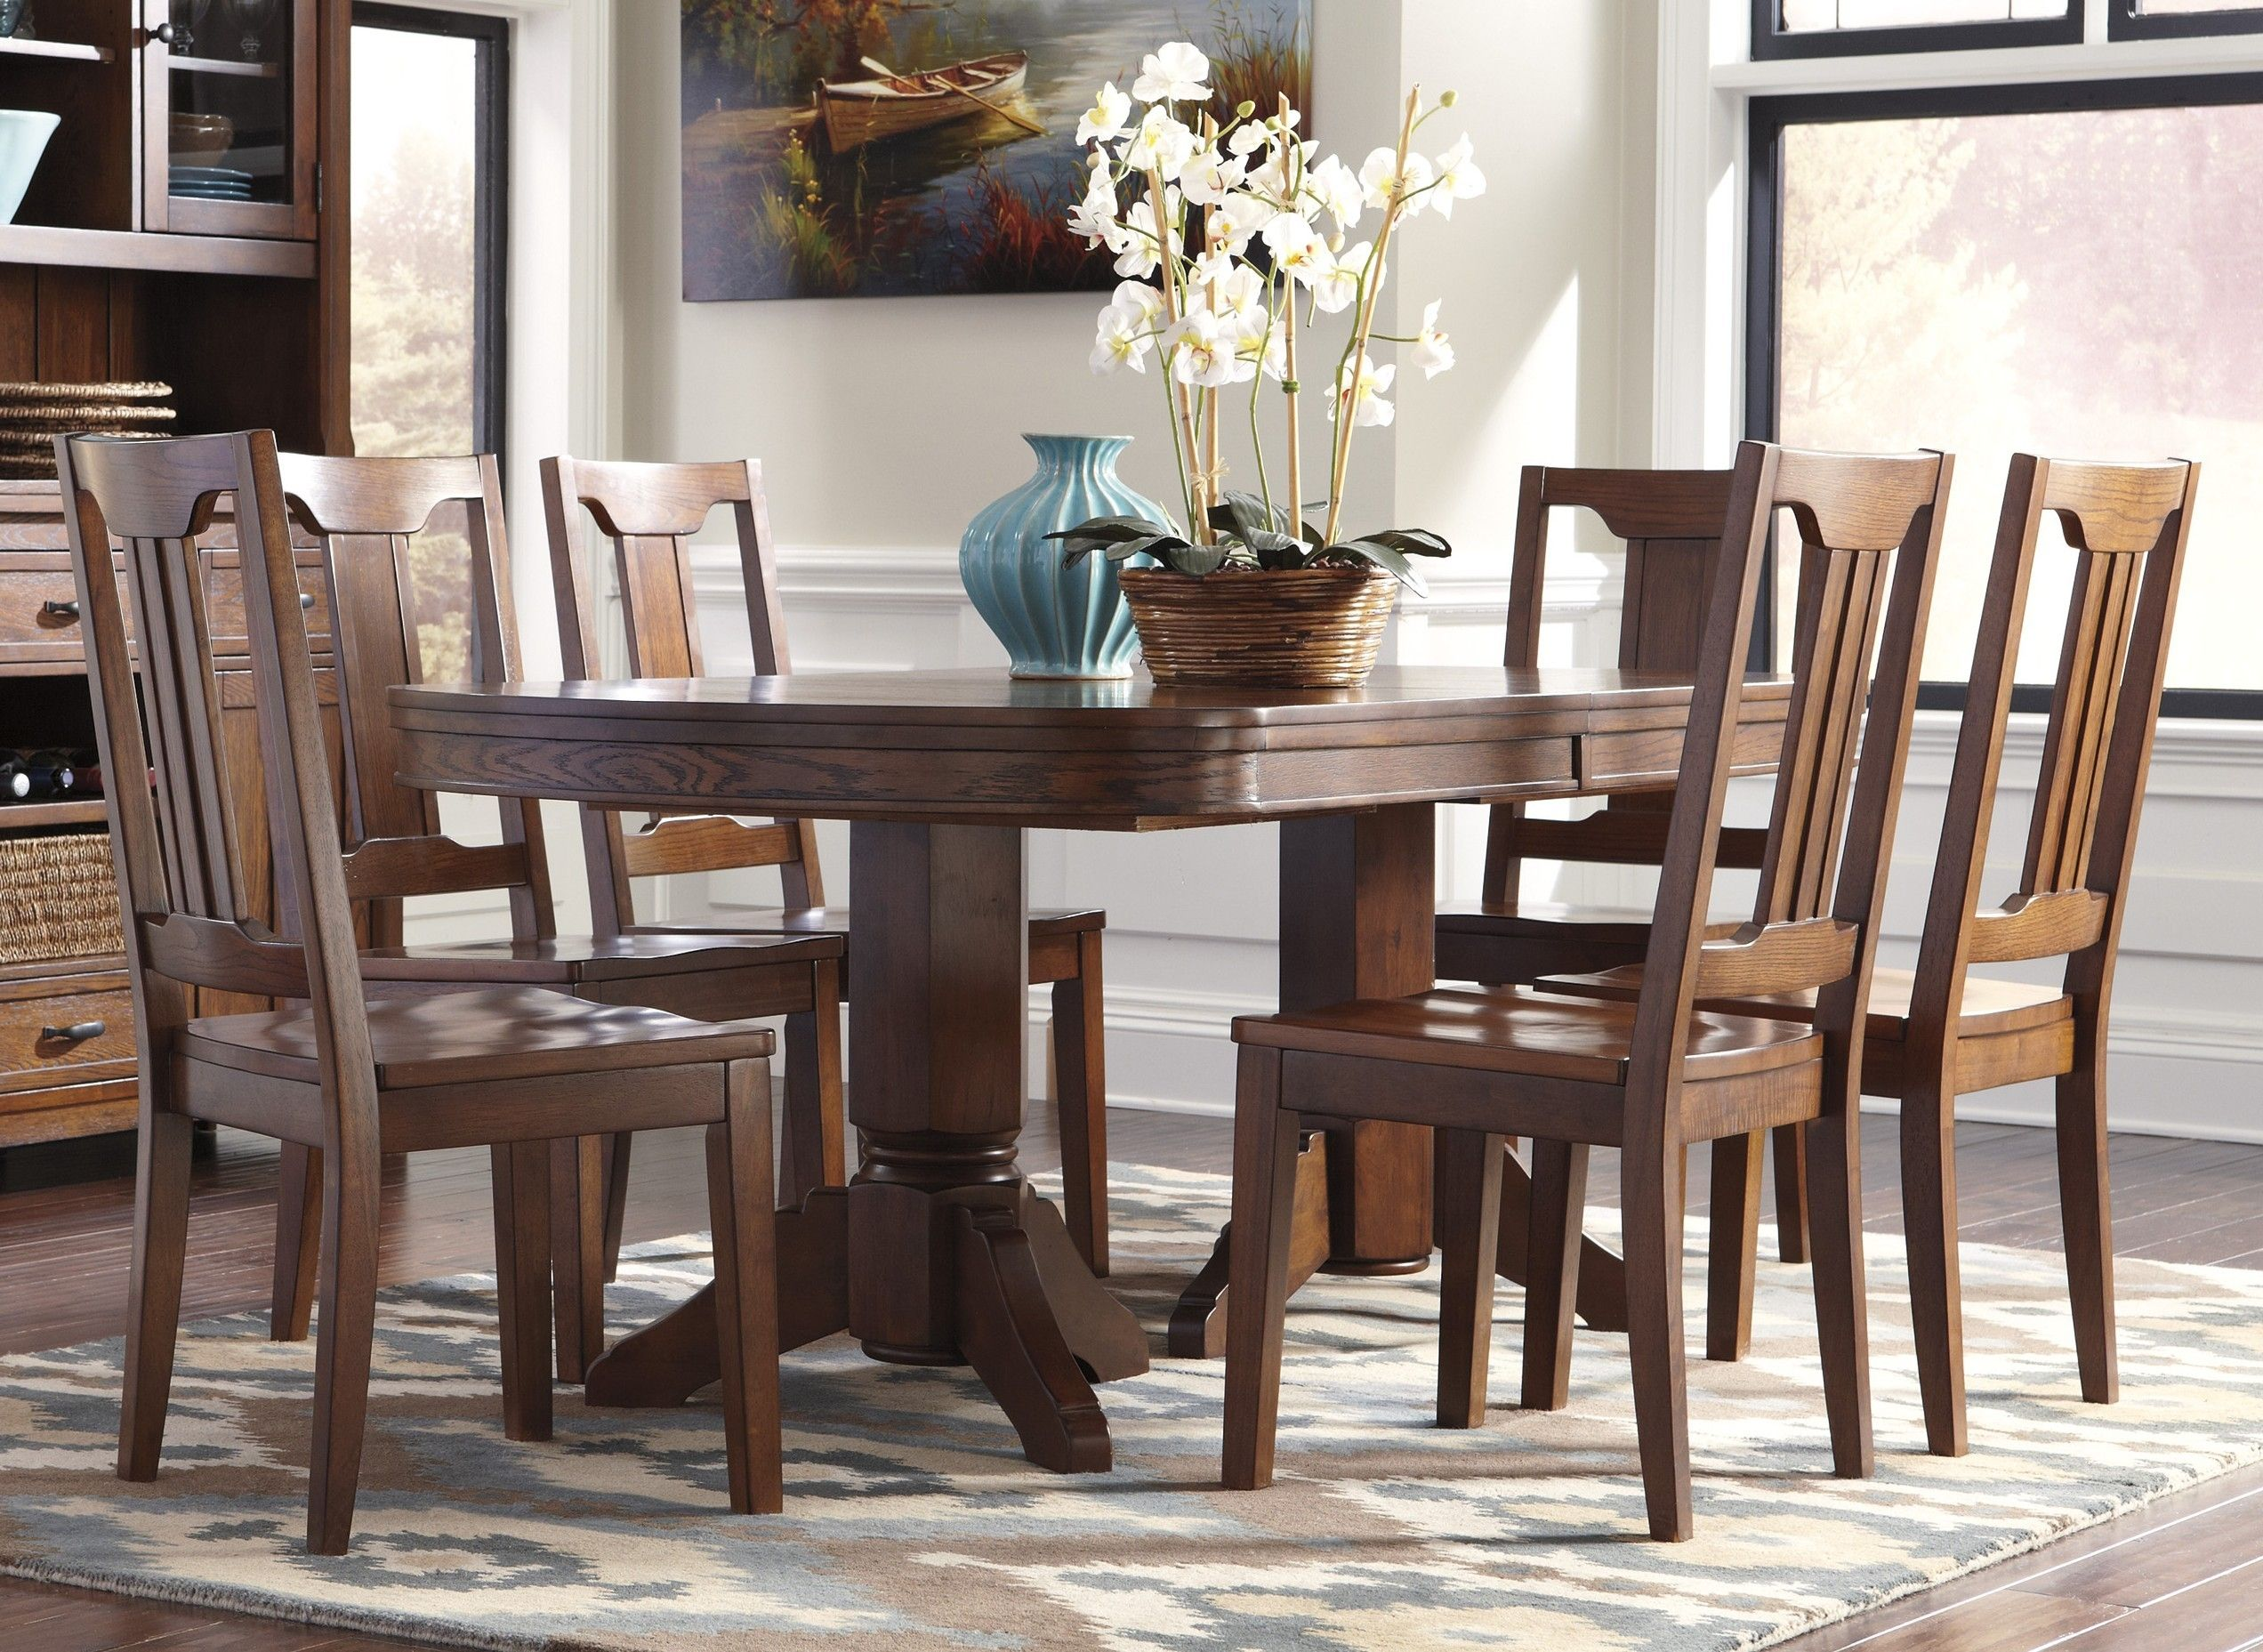 Nice Awesome Dining Table Ashley Furniture 88 For Home Designing Impressive Oval Dining Room Table And Chairs Design Ideas